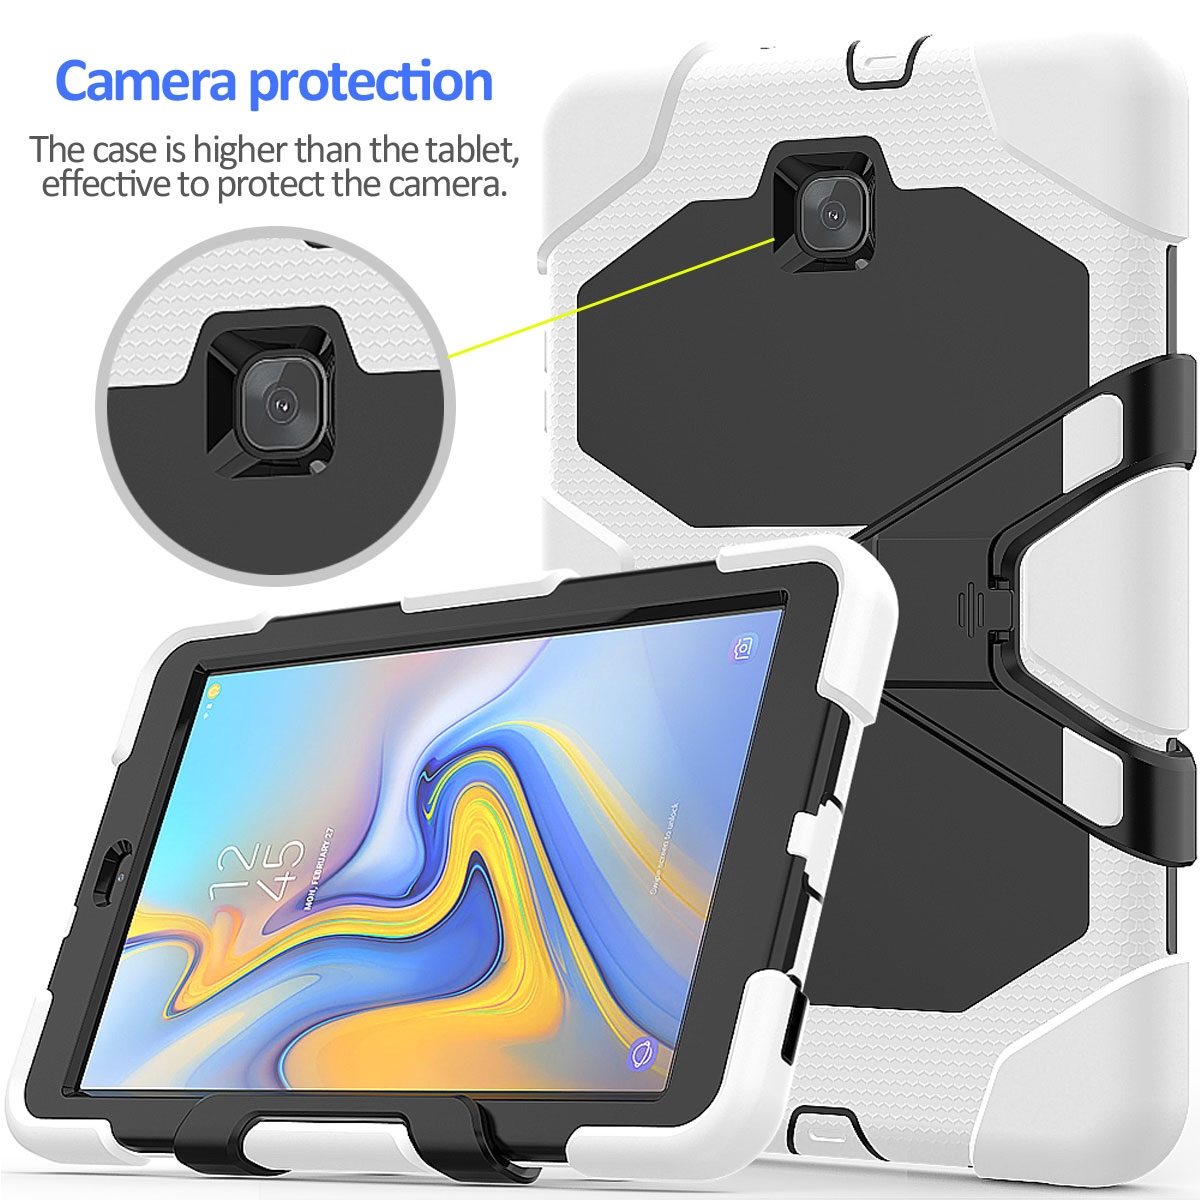 Rugged-Hard-Case-For-Samsung-Galaxy-Tab-A-8-0-2018-SM-T387-with-Screen-Protector thumbnail 37